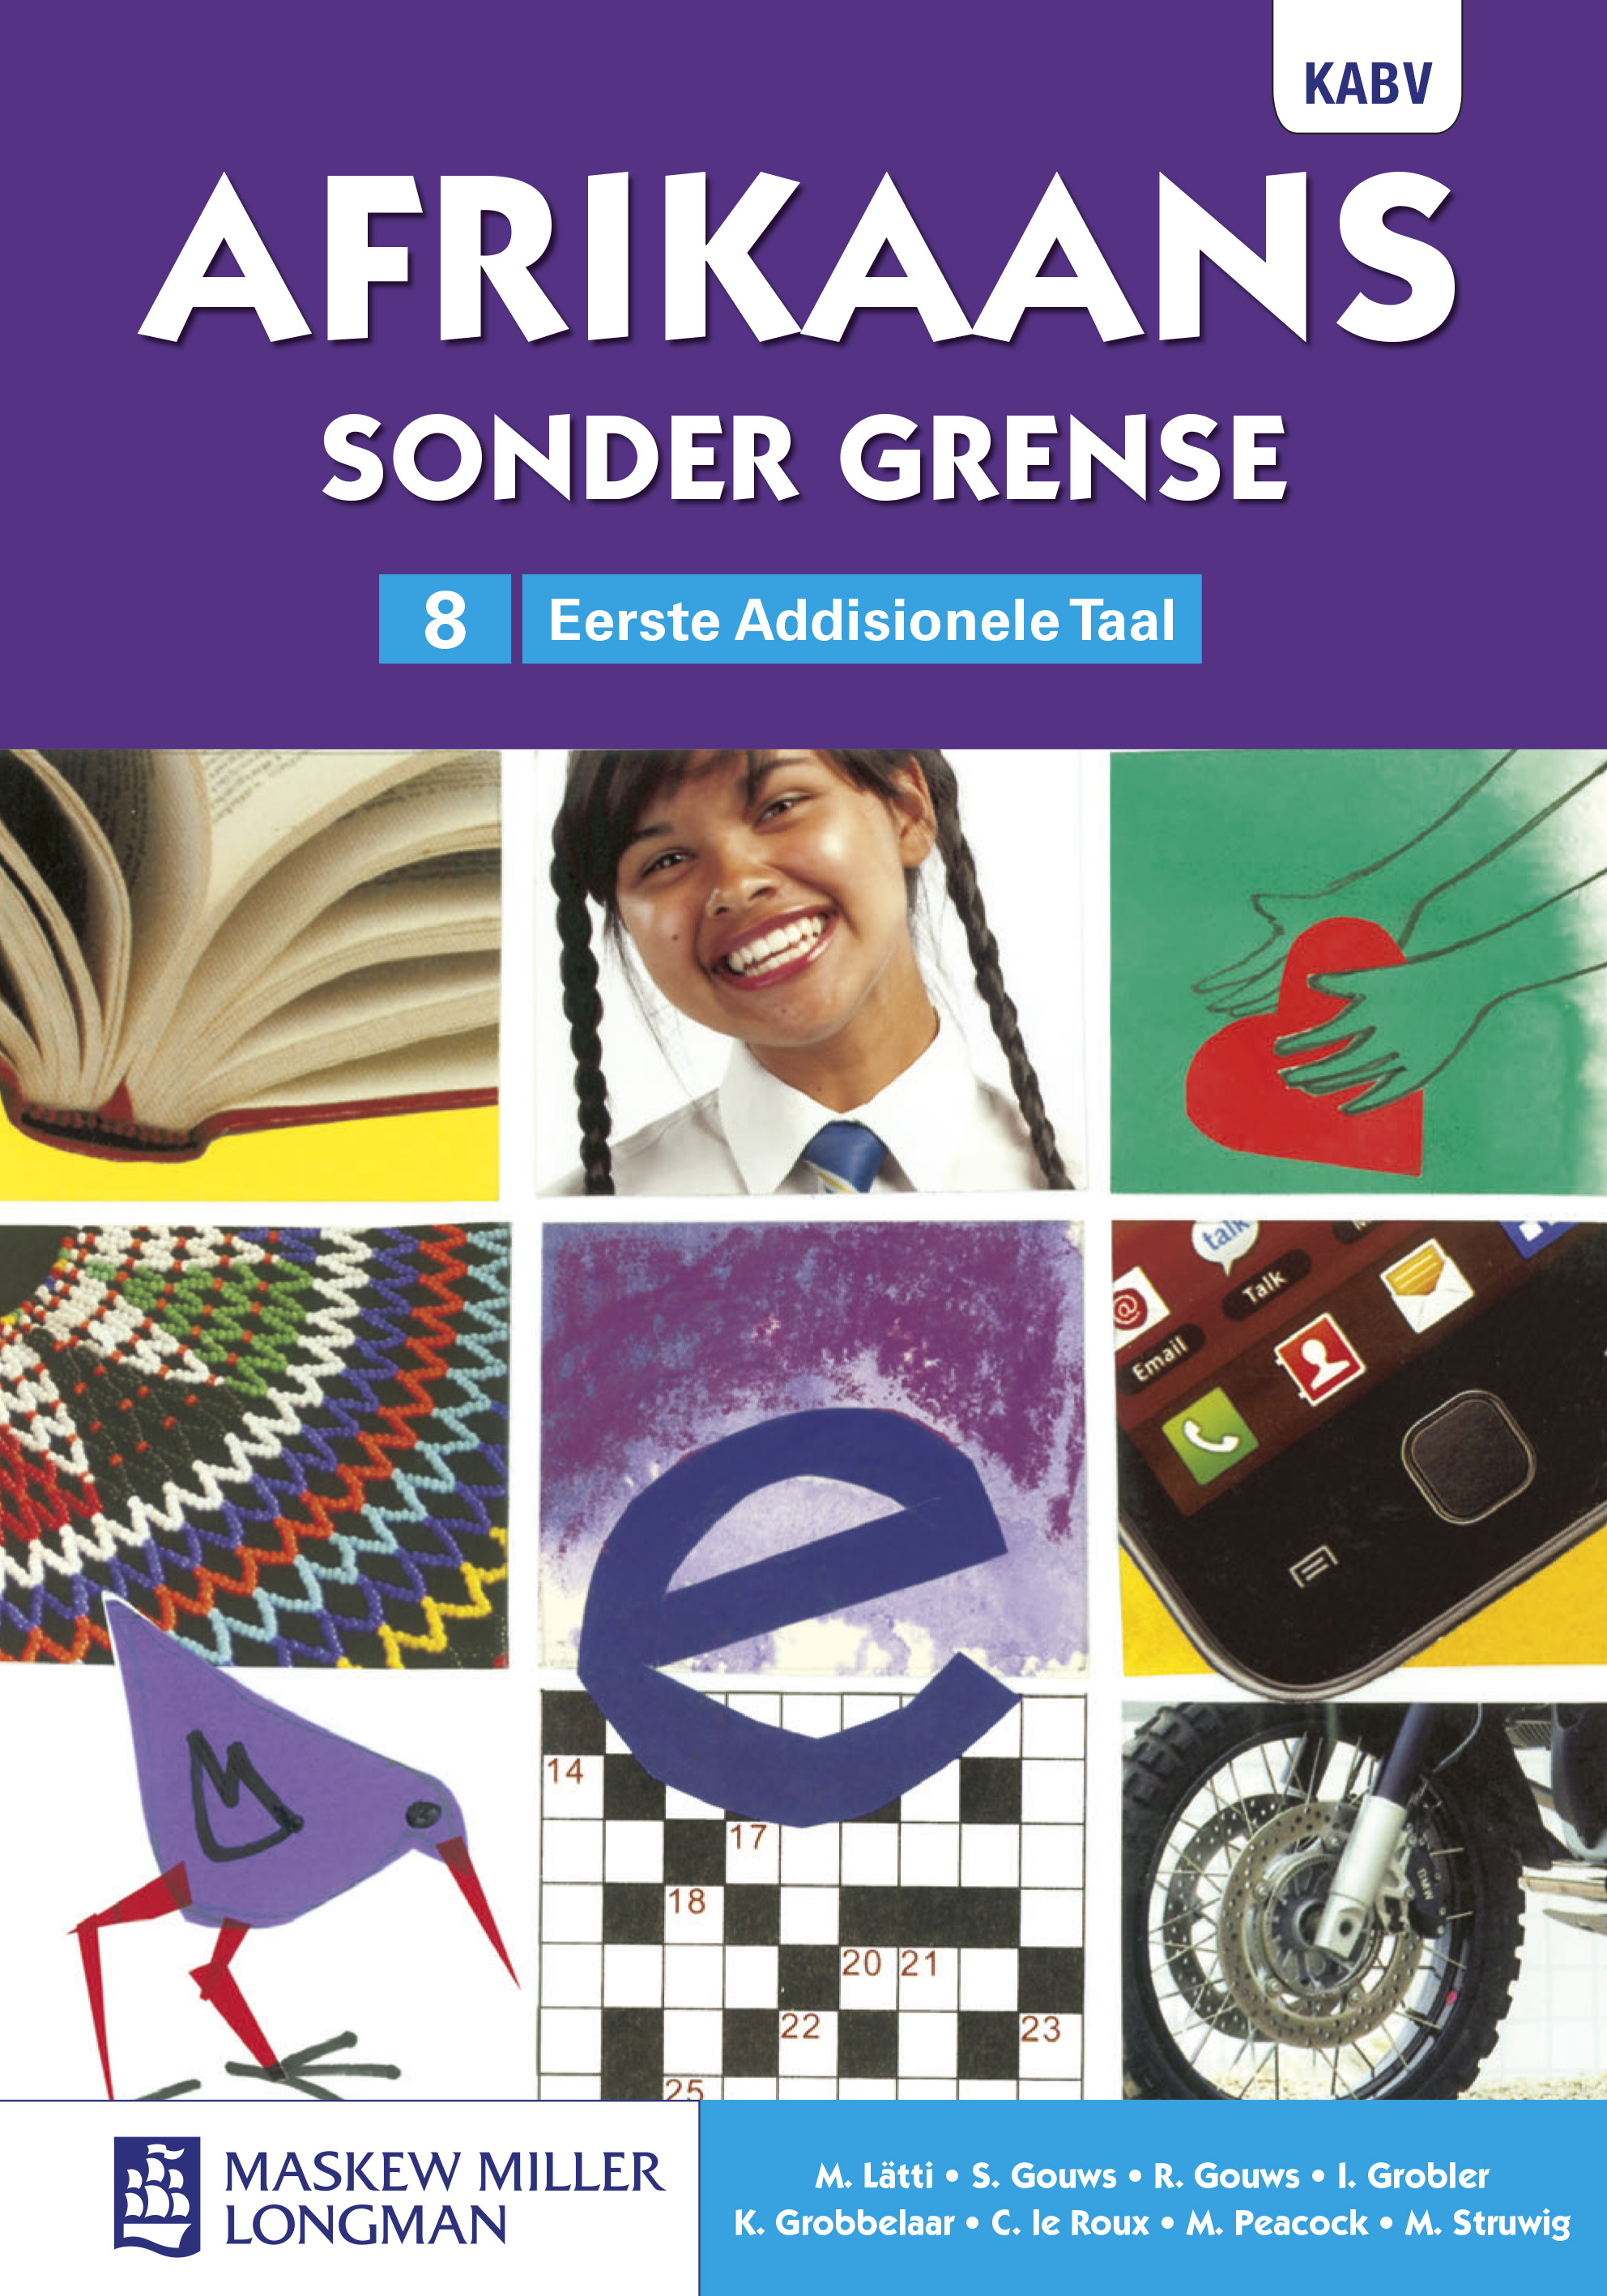 Picture of Afrikaans sonder grense KABV